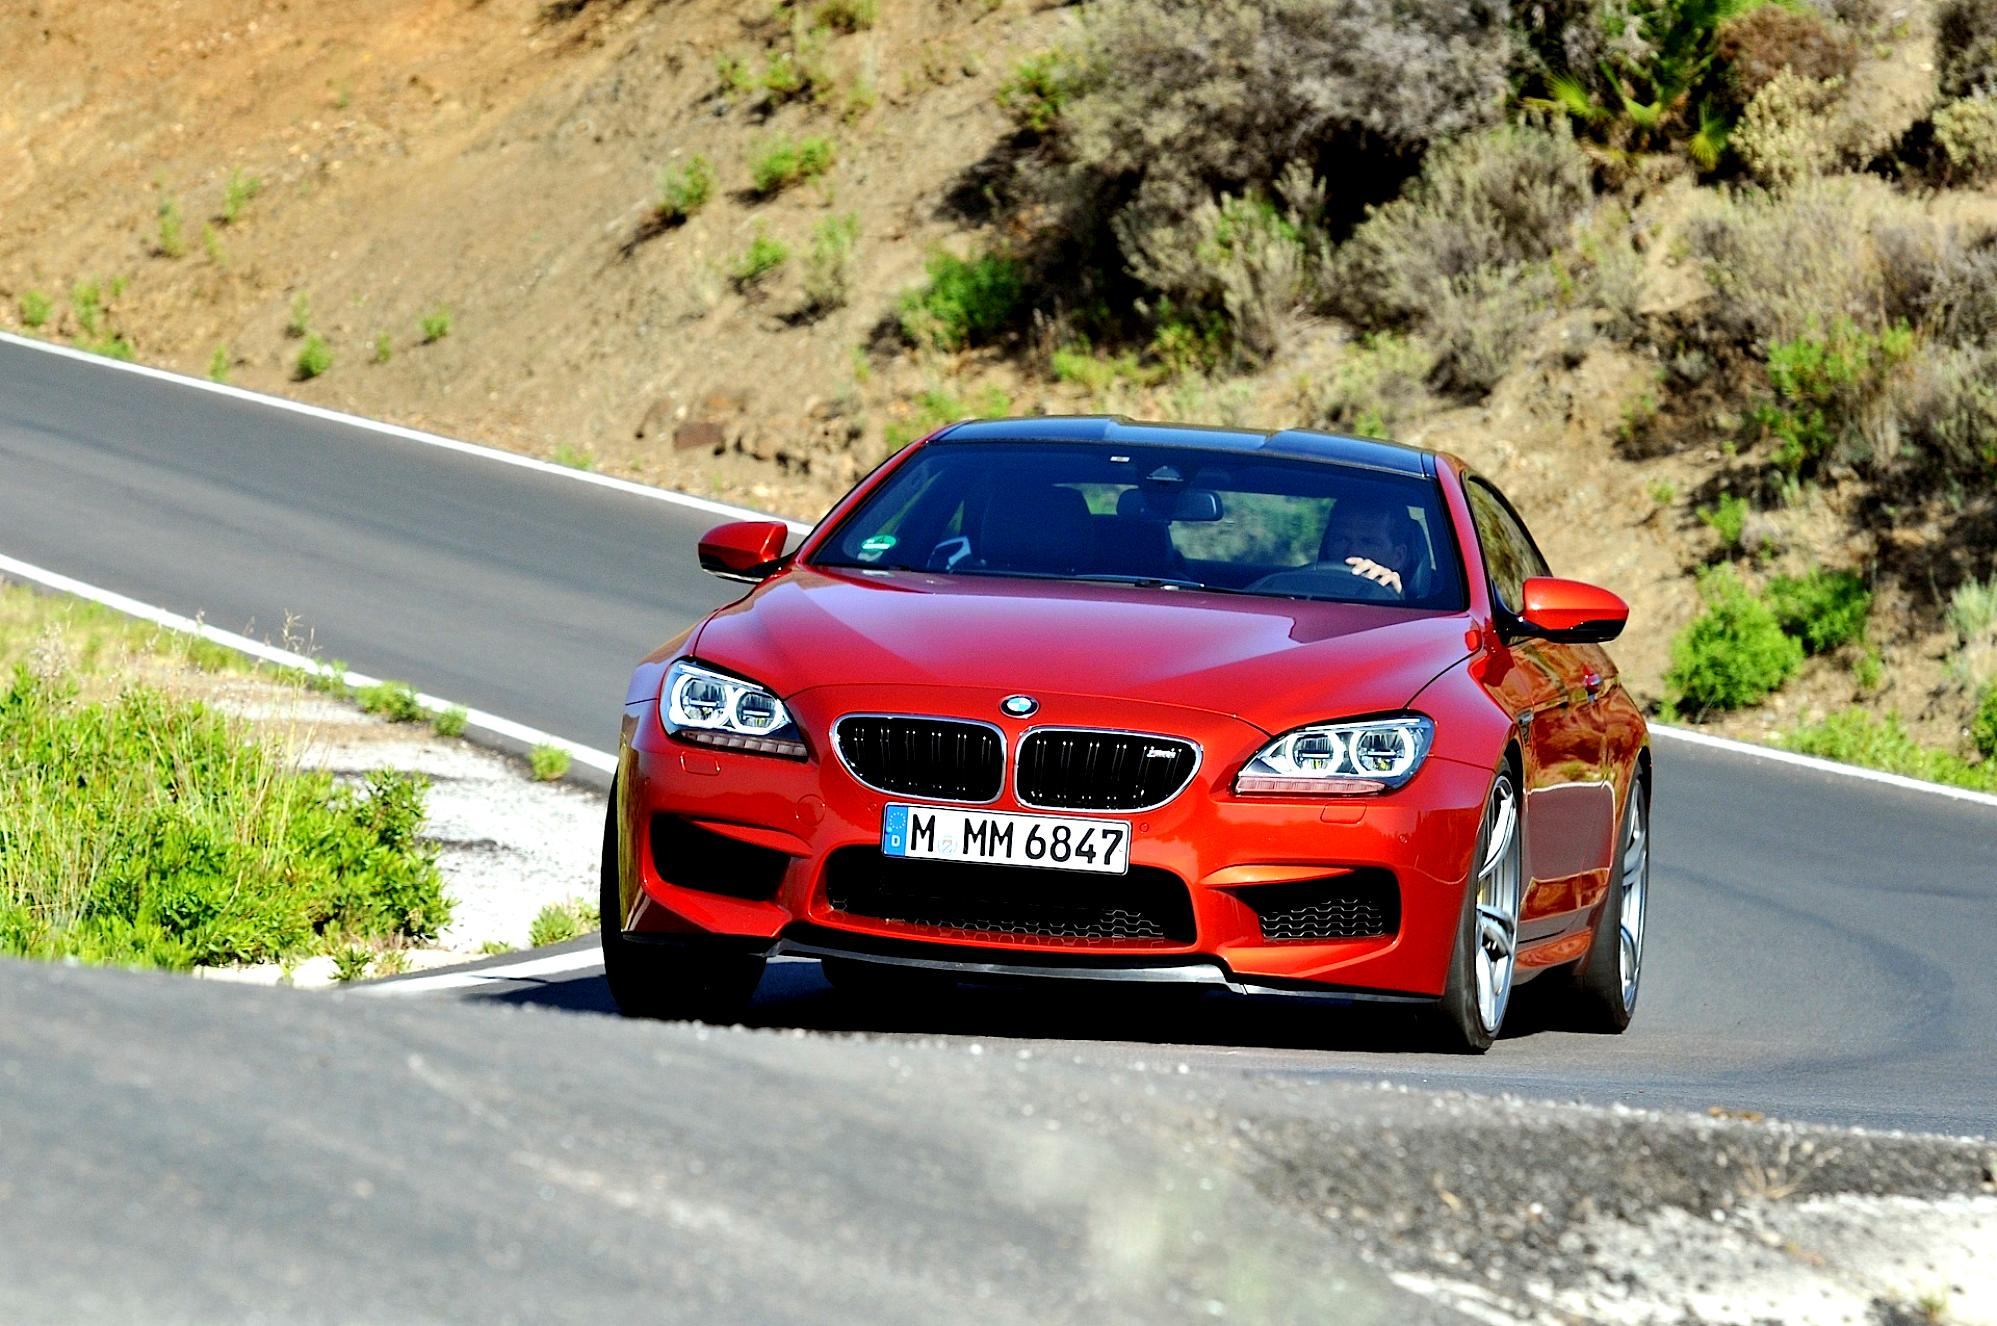 BMW M6 Coupe F13 2012 #73